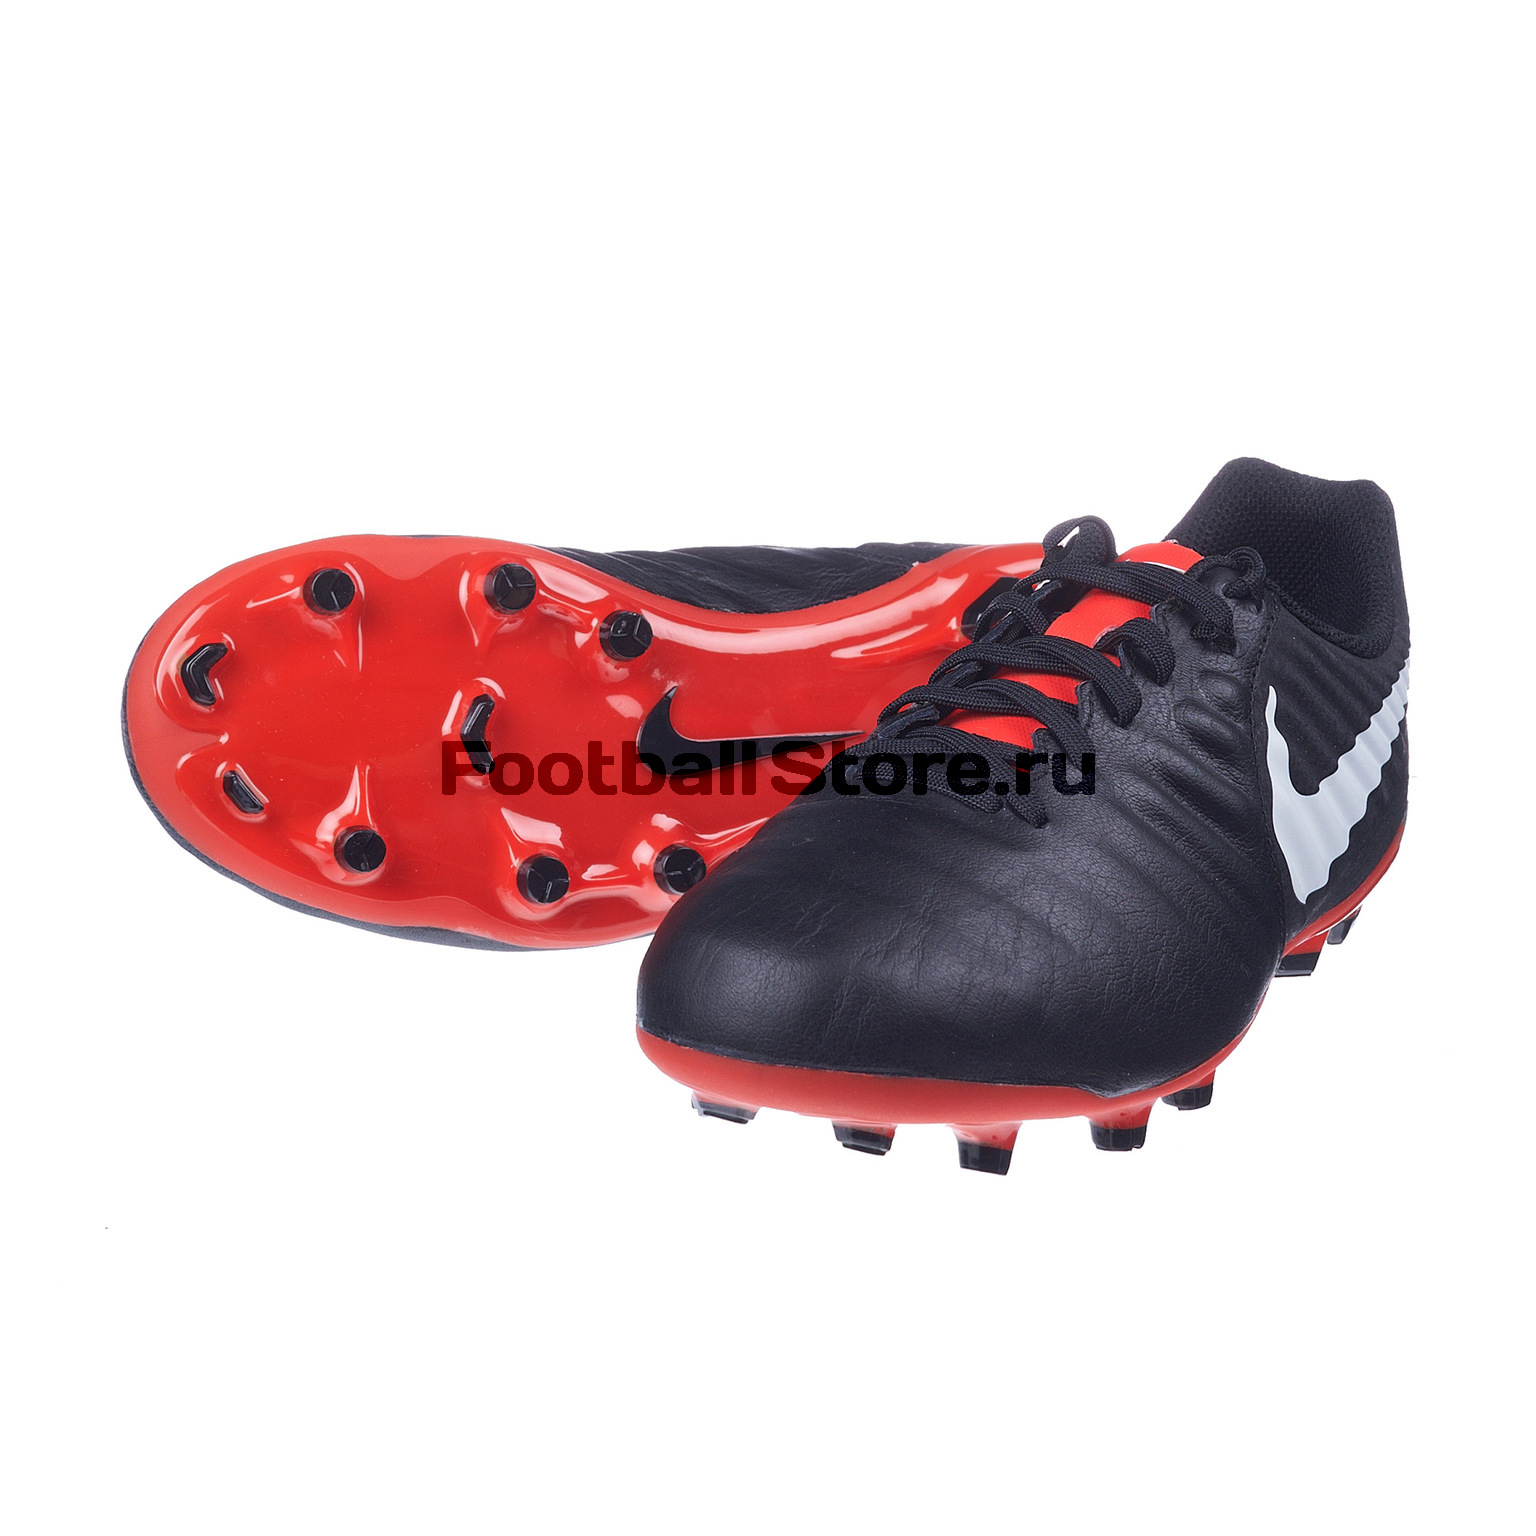 Бутсы Nike JR Legend 7 Academy FG AO2291-006 бутсы nike шиповки nike jr tiempox legend vi tf 819191 018